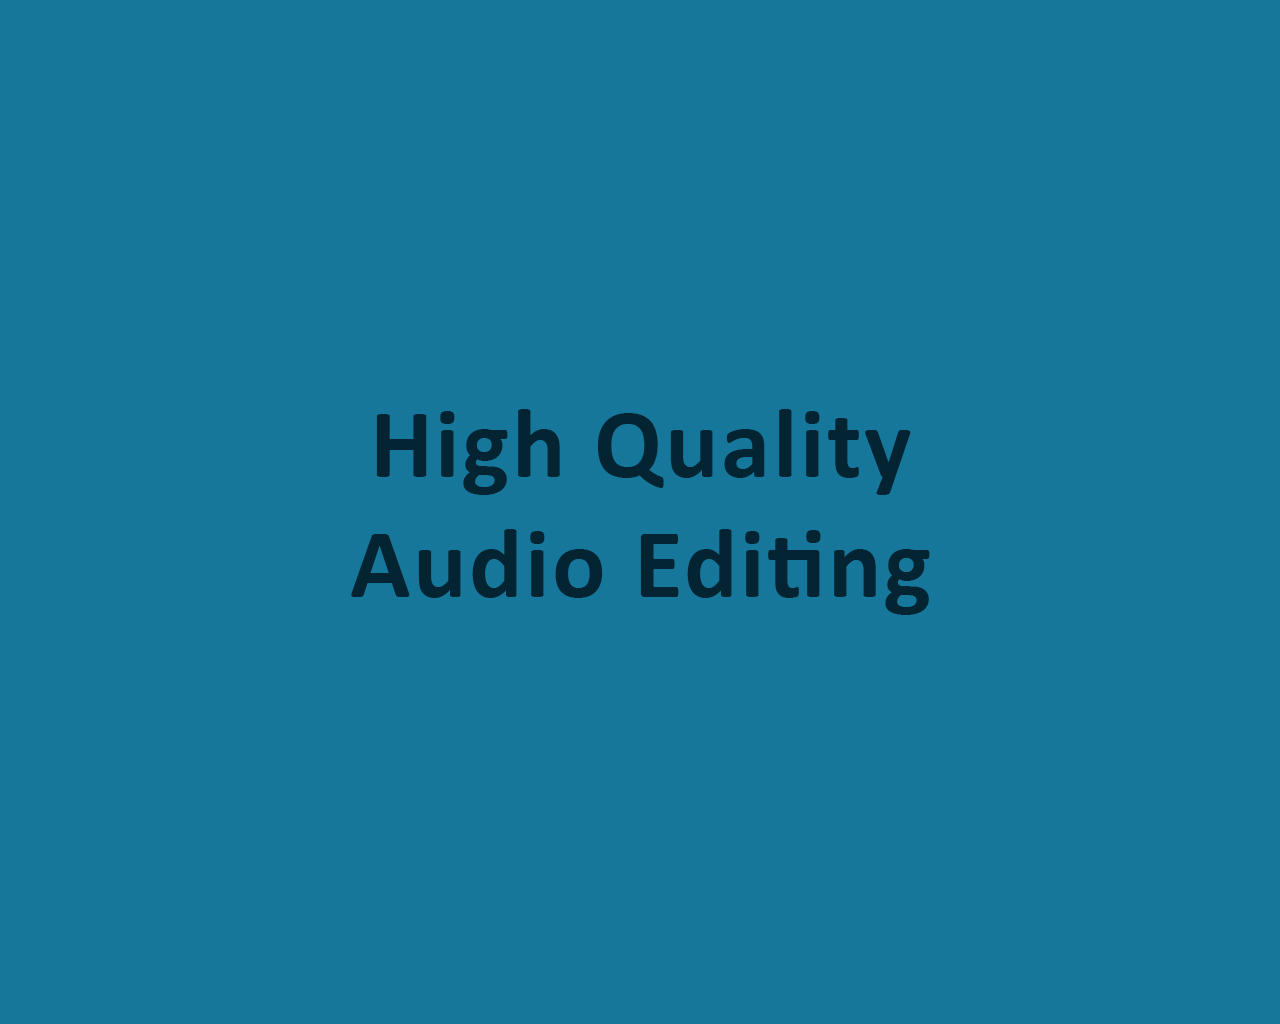 High Quality Audio Editing by odiusfly - 105959